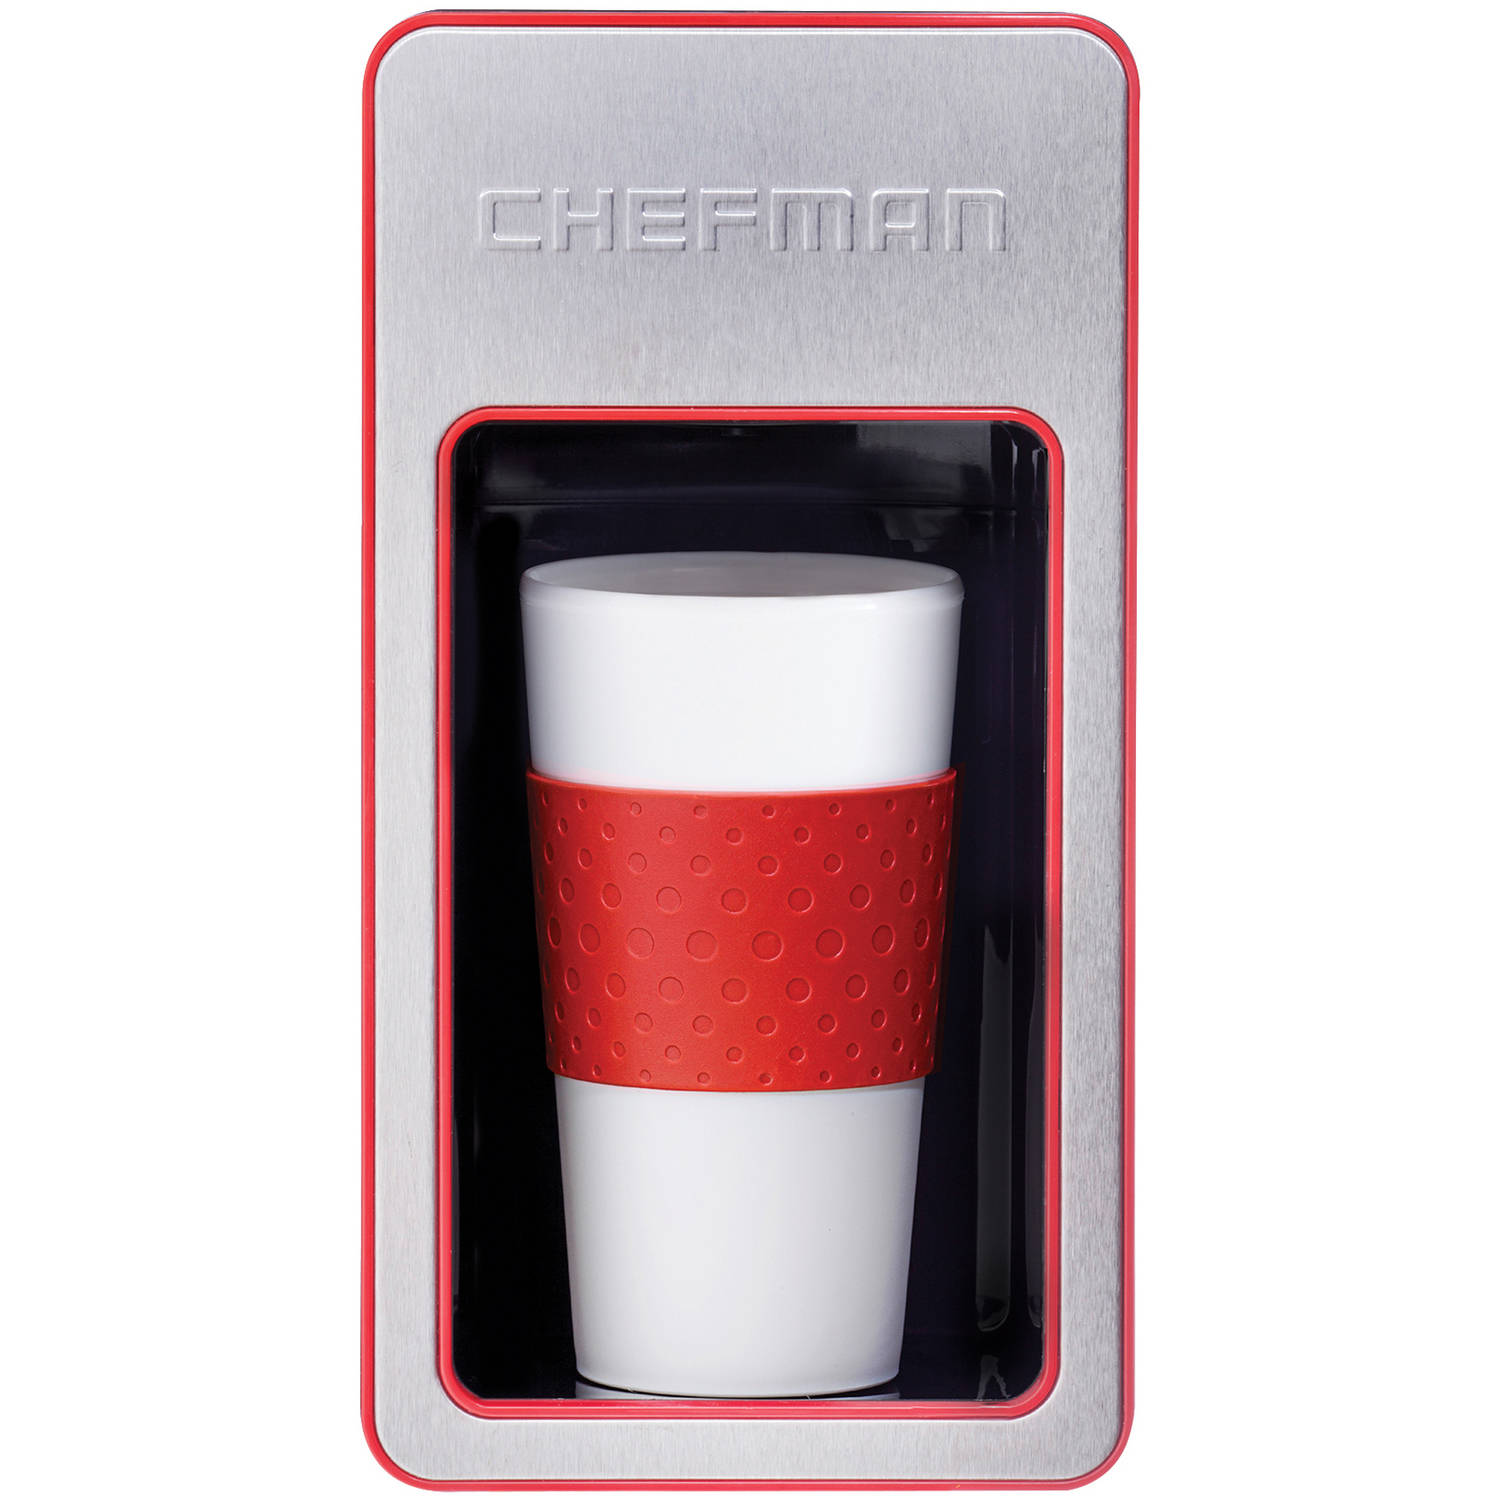 Chefman Personal Coffee Maker